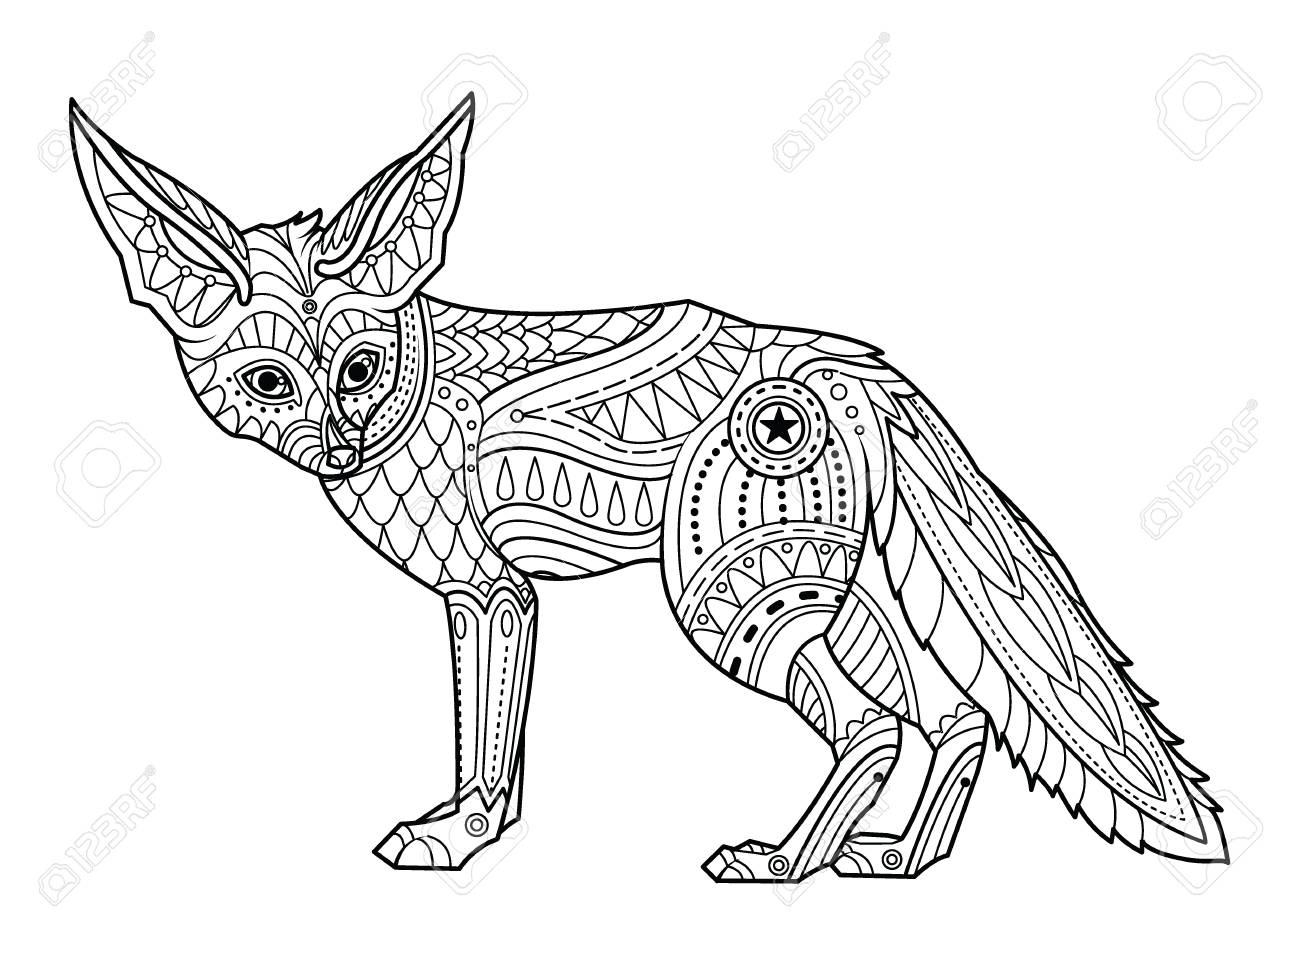 Fox coloring page. Hand drawn ornamental art, for adult coloring..